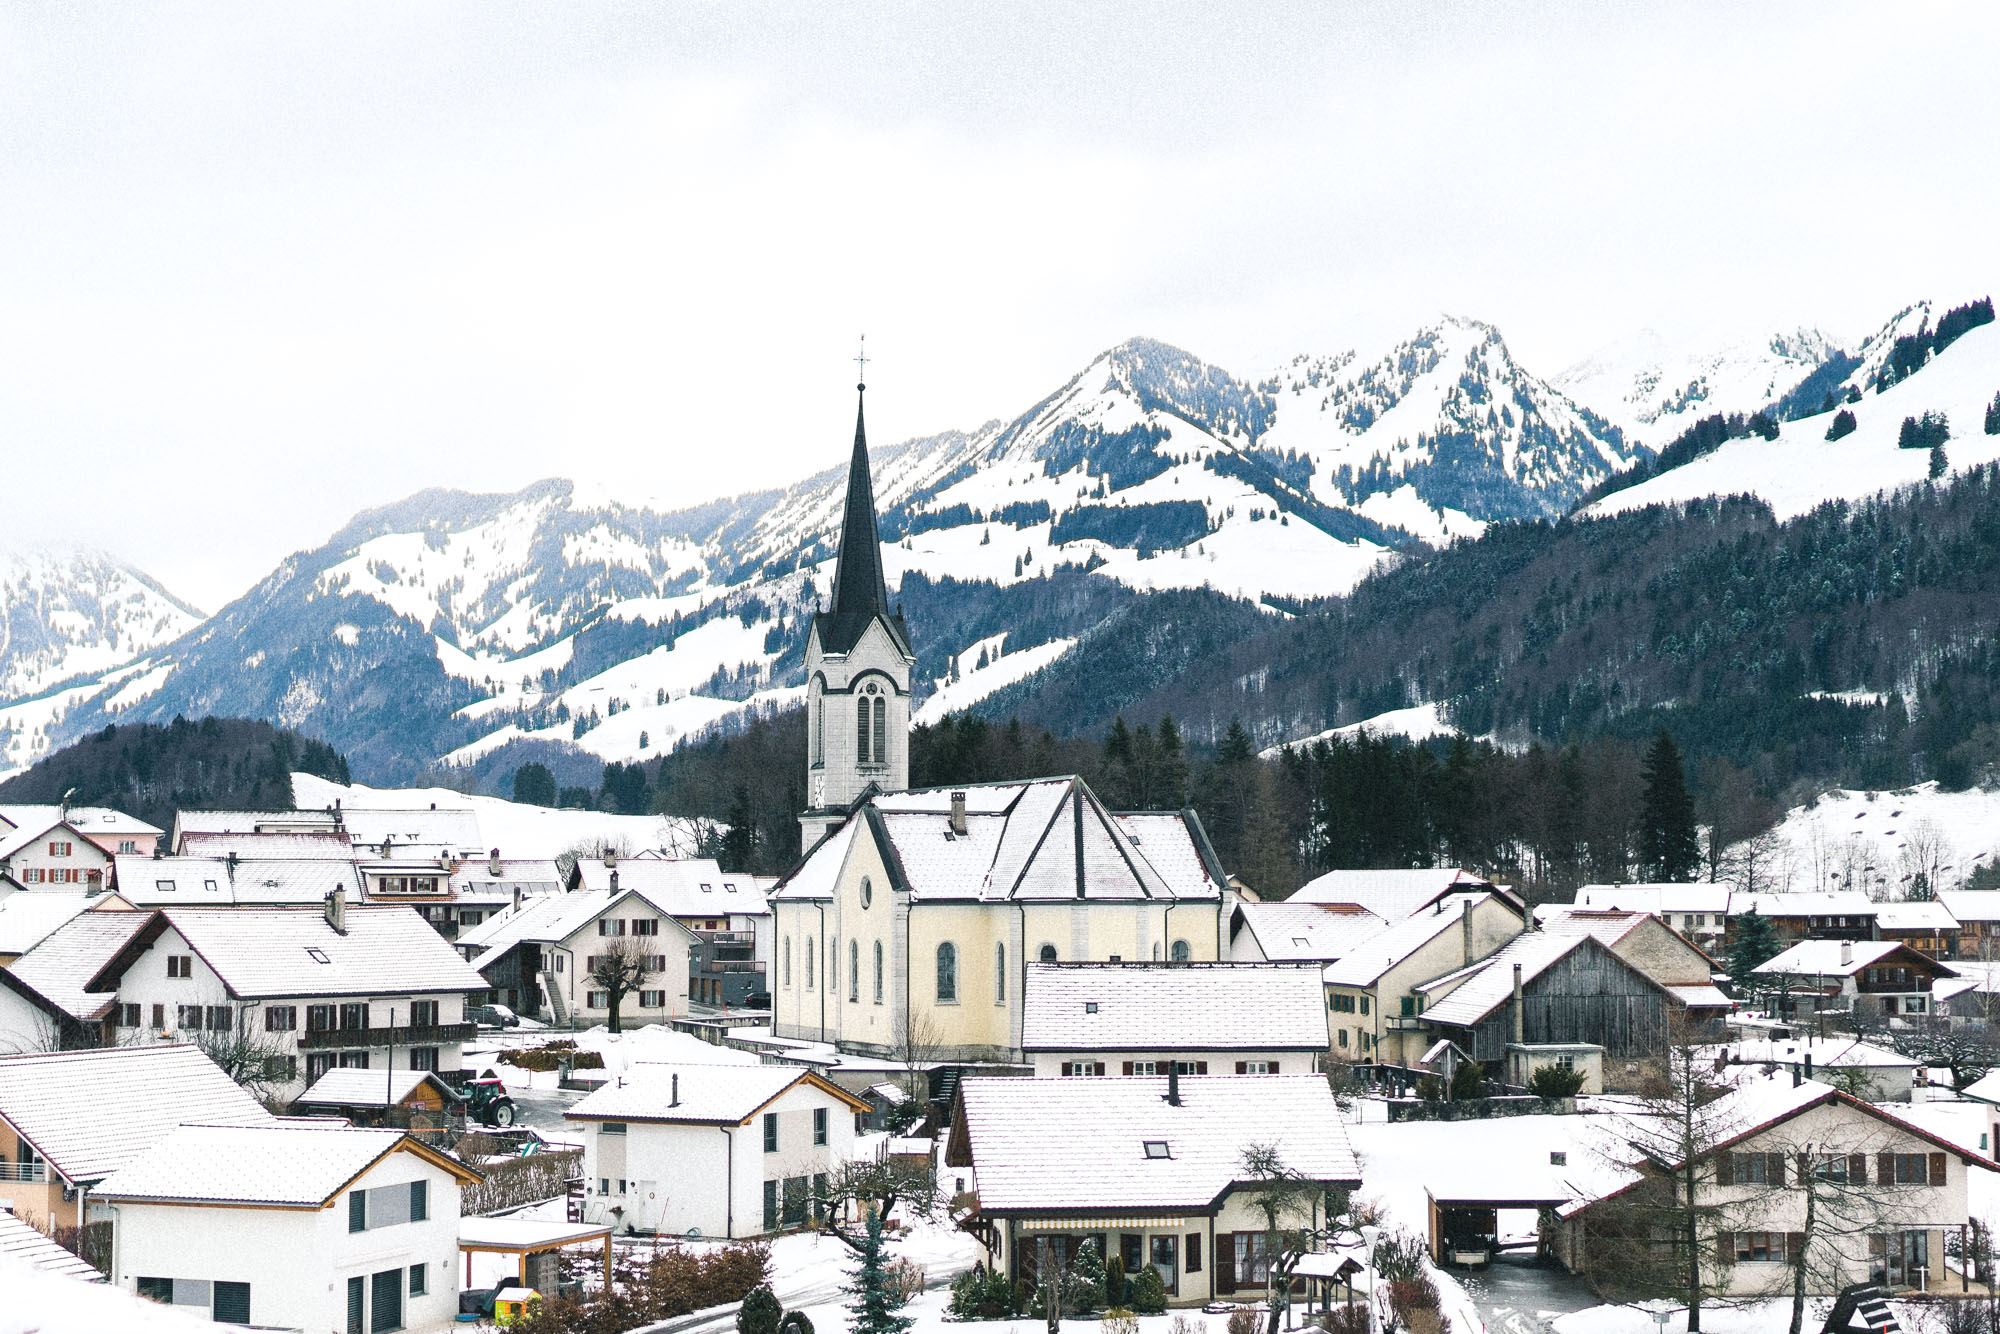 Downtown Gstaad, Switzerland, A Luxury Ski Town in Winter